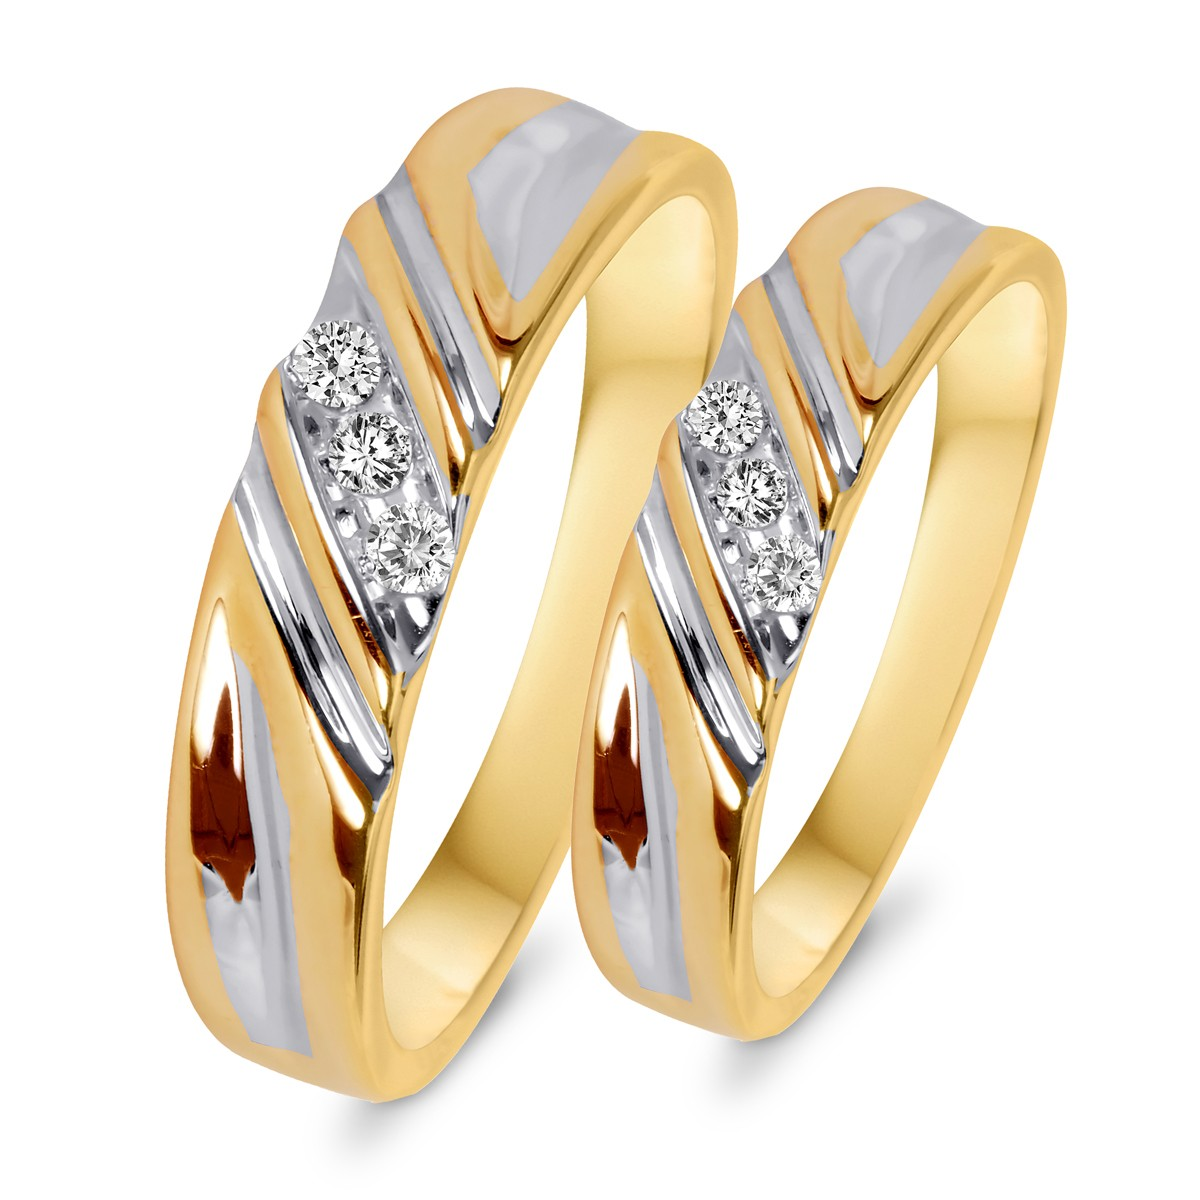 110 CT TW Diamond His And Hers Wedding Rings 10K Yellow Gold